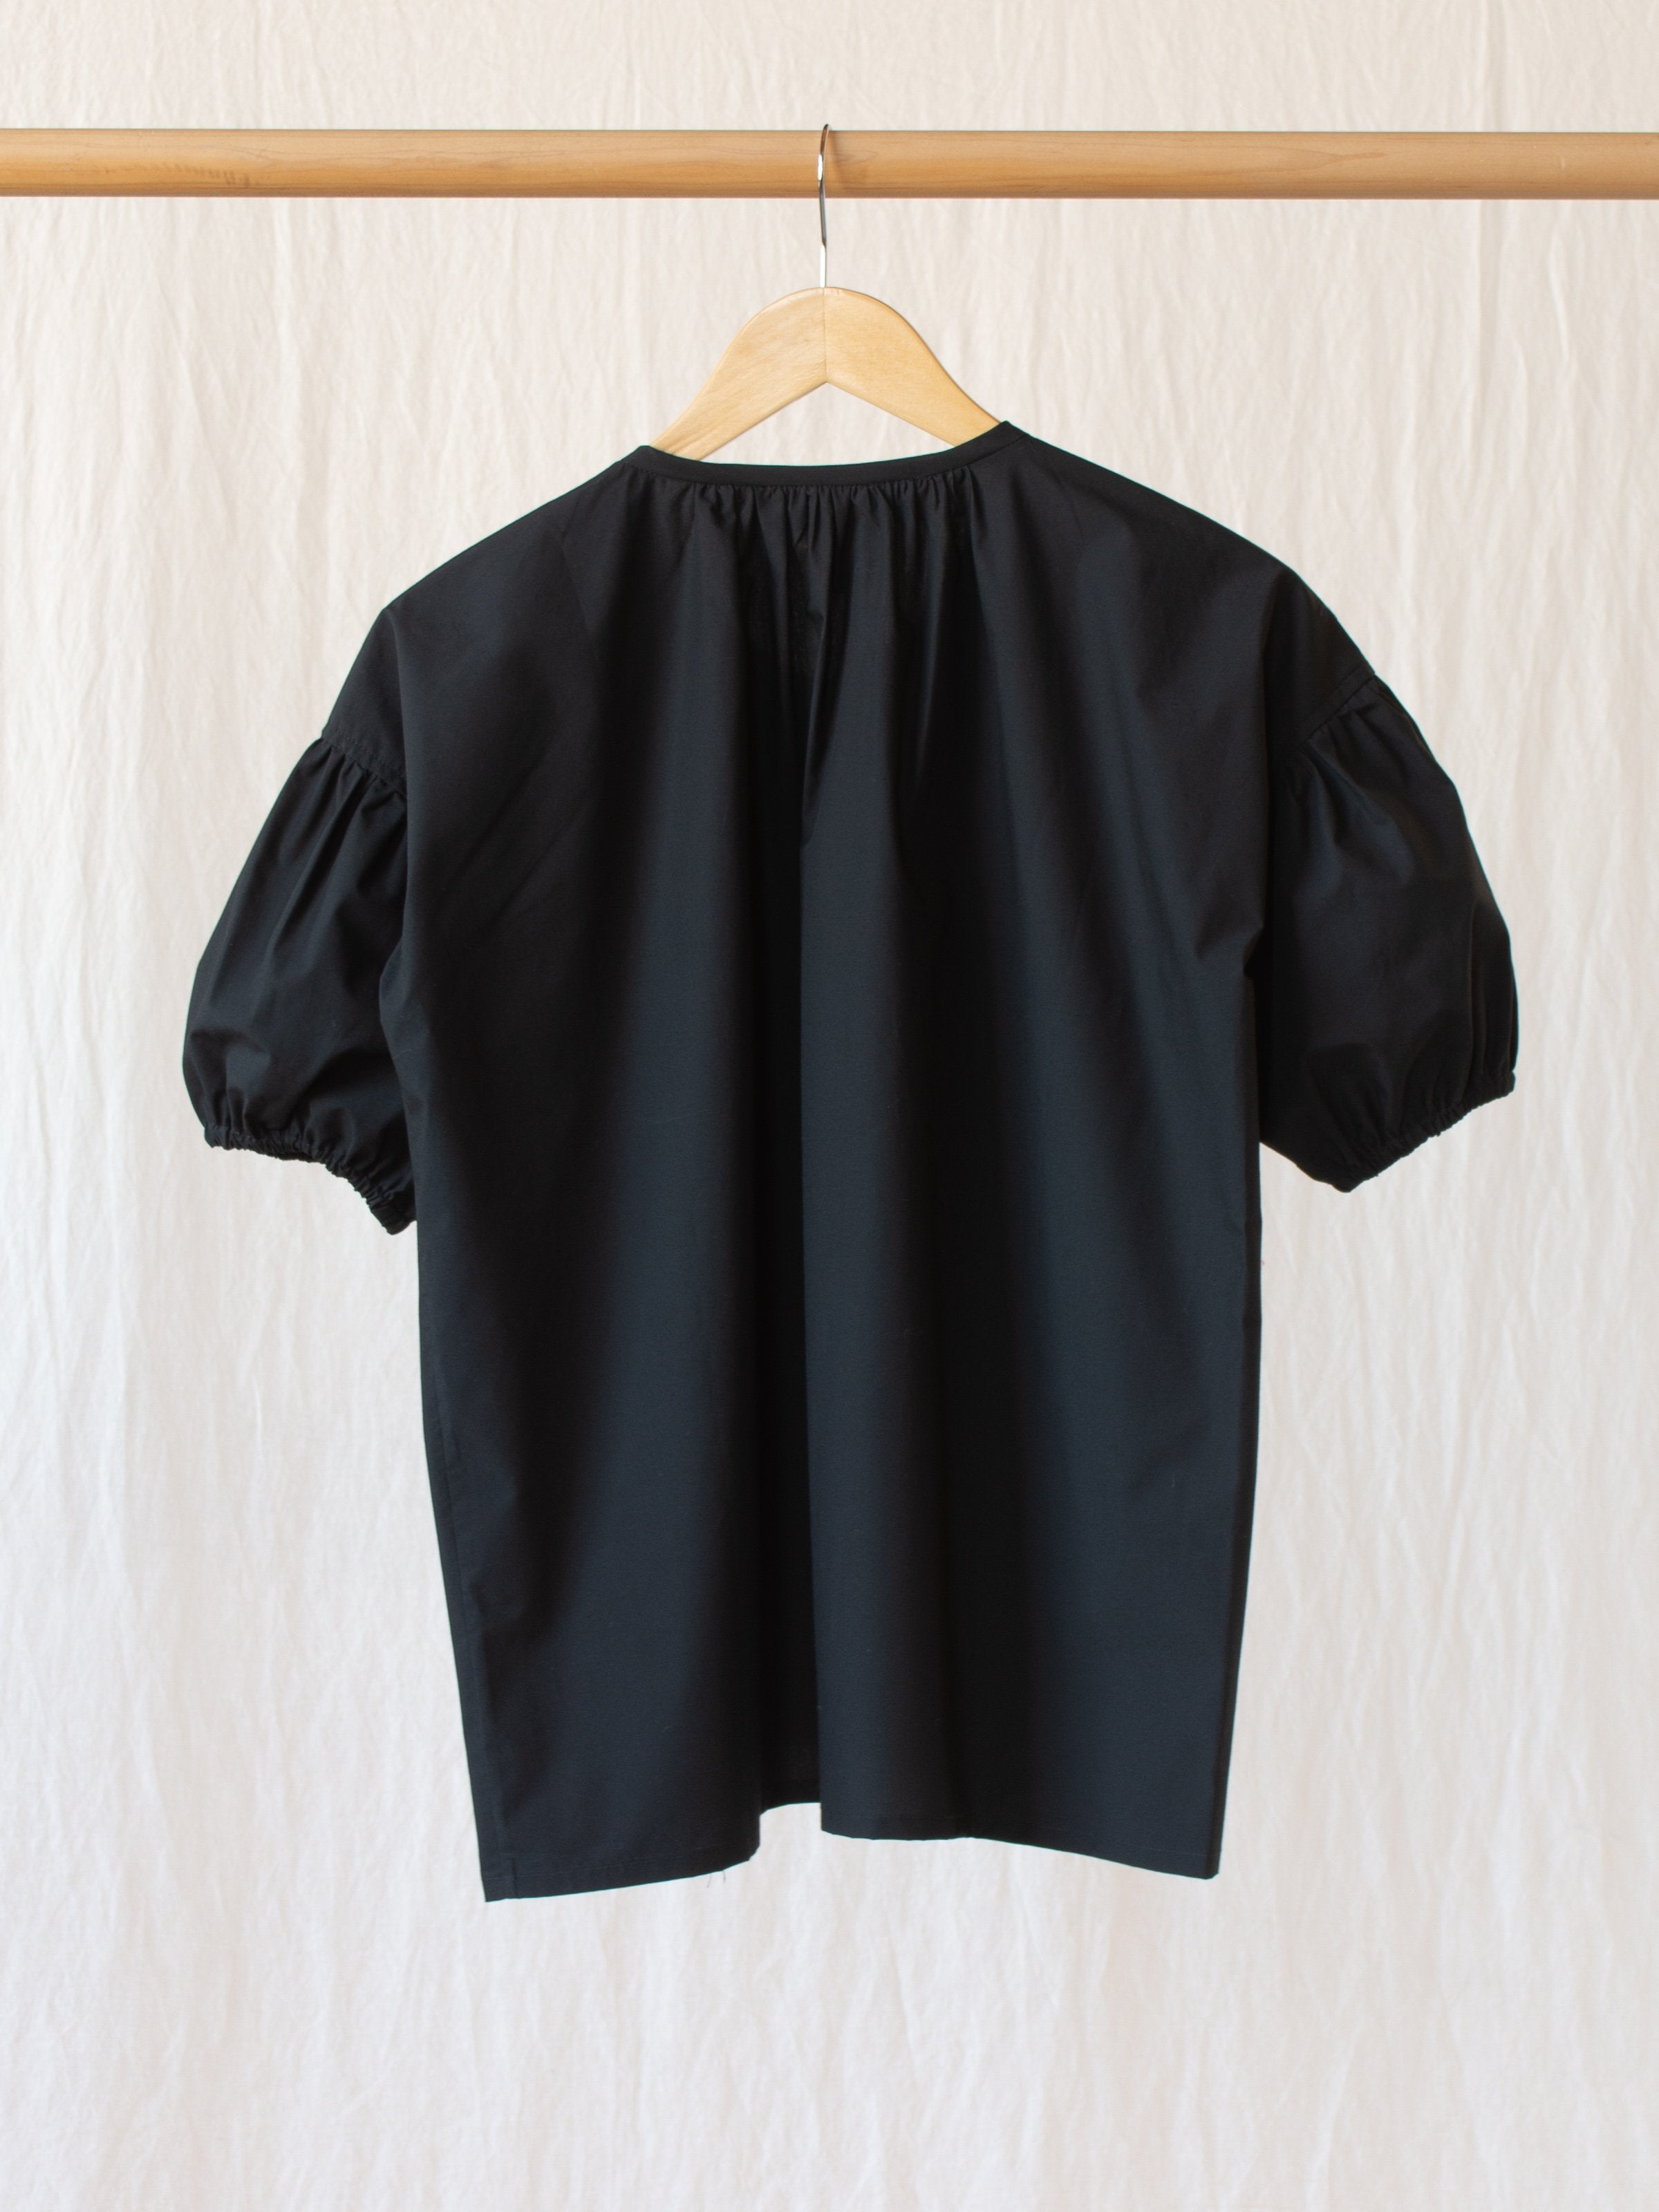 Namu Shop - Caron Callahan Isola Top - Black